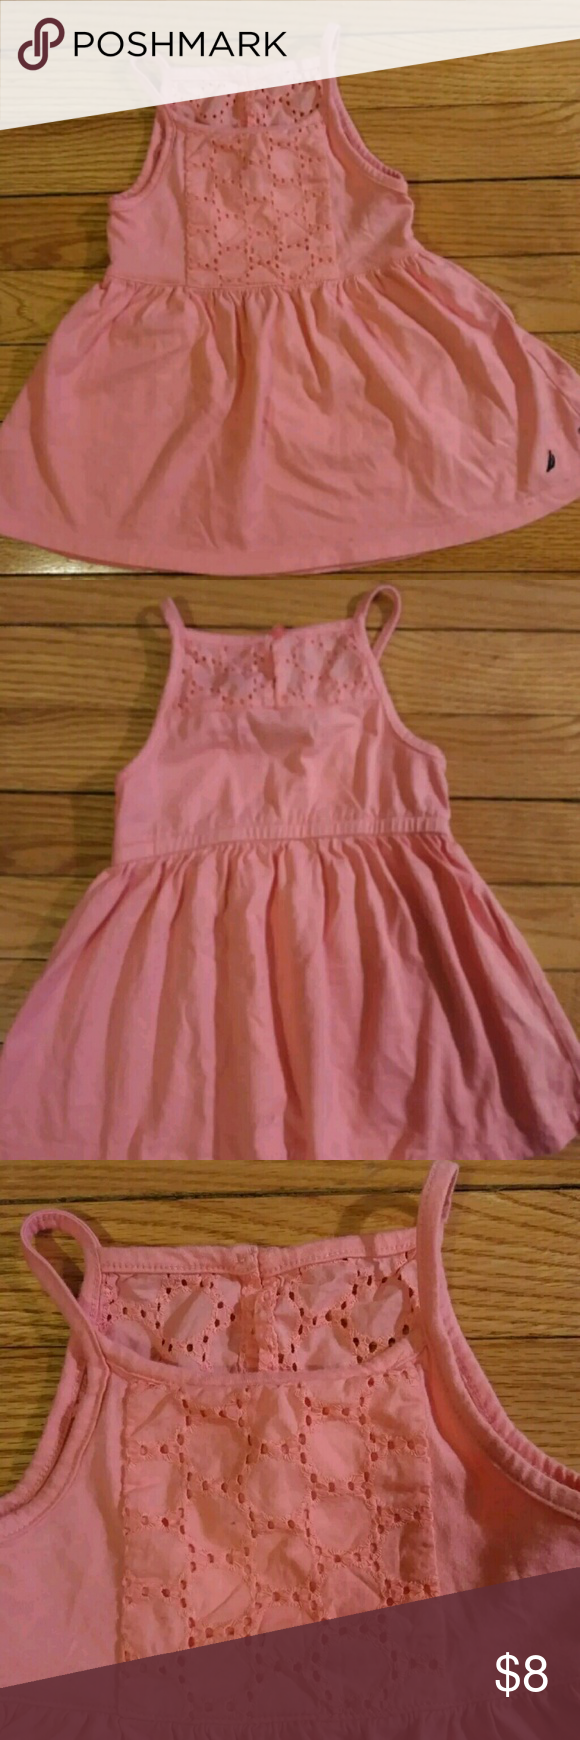 Nautica Peach Baby Summer Dress Size 18 Mth Super Cute Nautica Summer Dress Is Perfect For Any Occasion The Love Baby Summer Dresses Summer Dresses Dresses [ 1740 x 580 Pixel ]